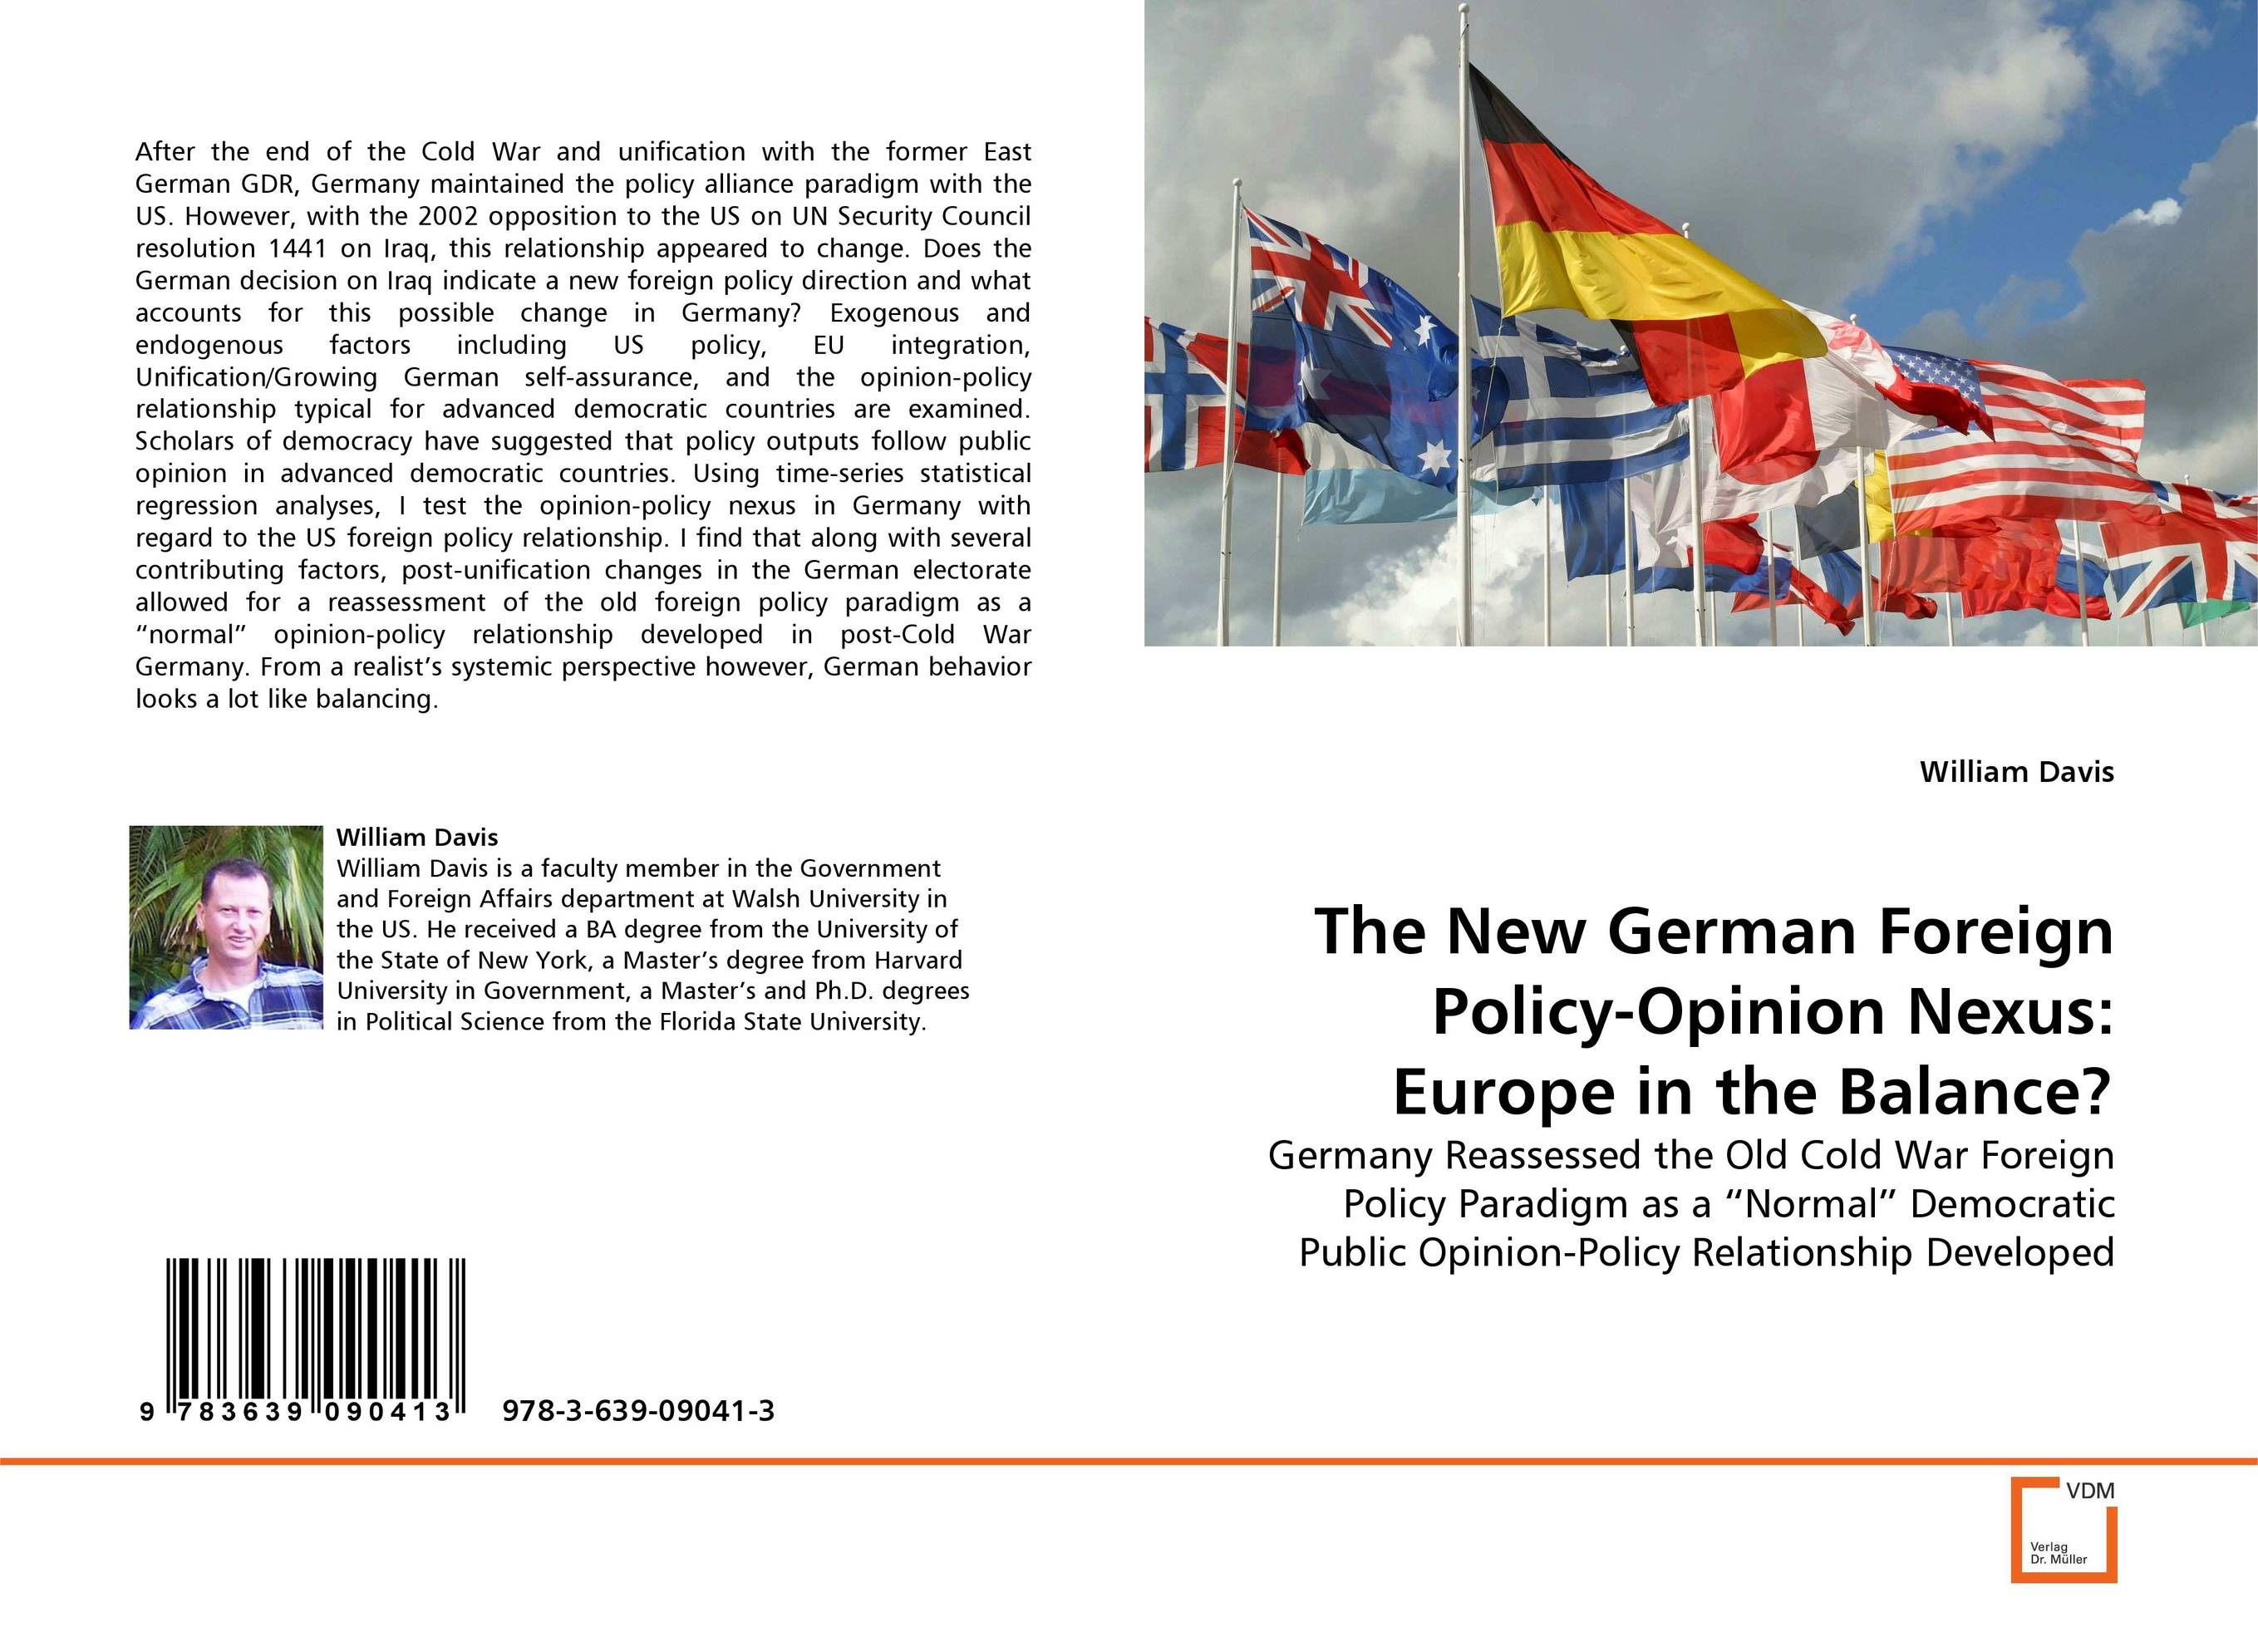 The New German Foreign Policy-Opinion Nexus: Europe in the Balance? ulrich beck german europe